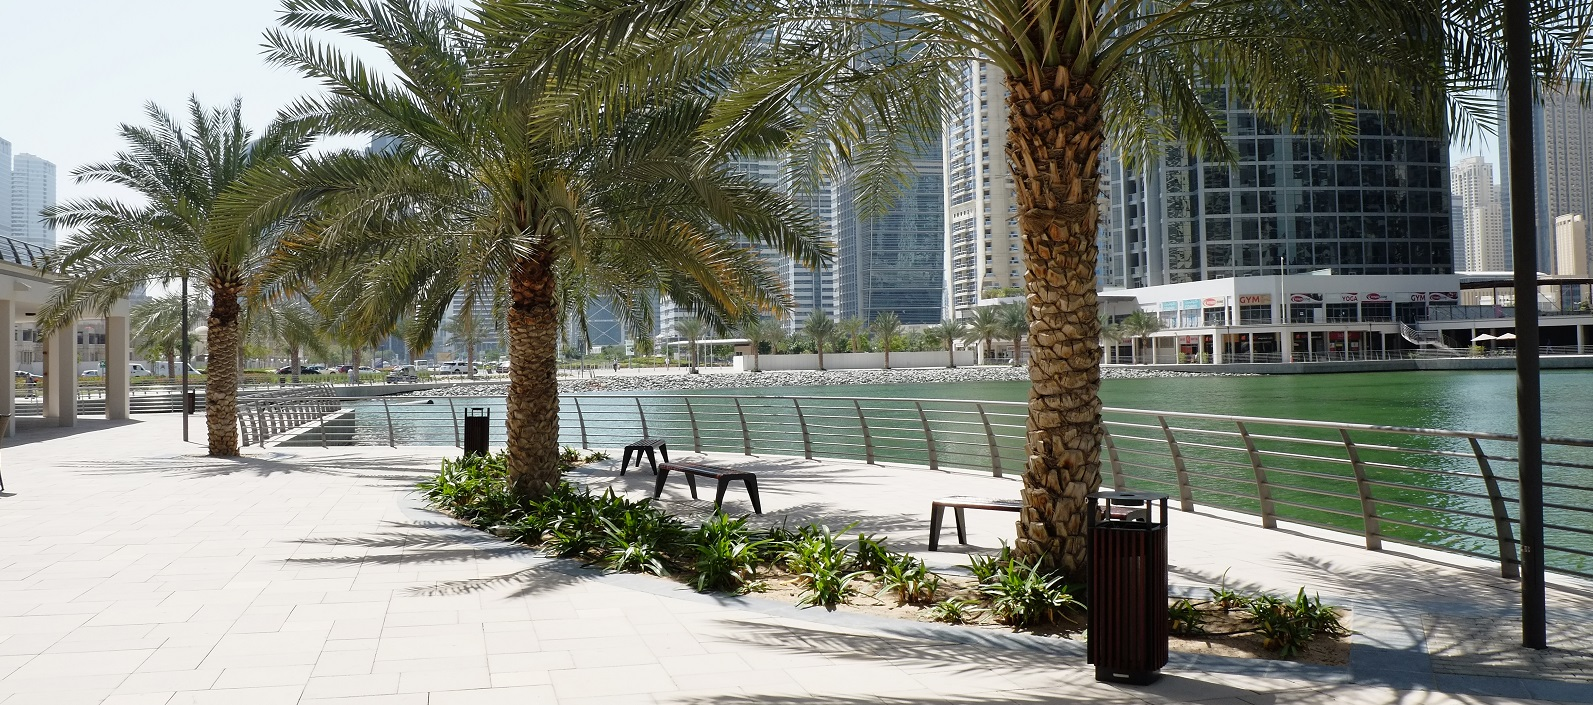 Real estate in Dubai - DSCF7120.jpg